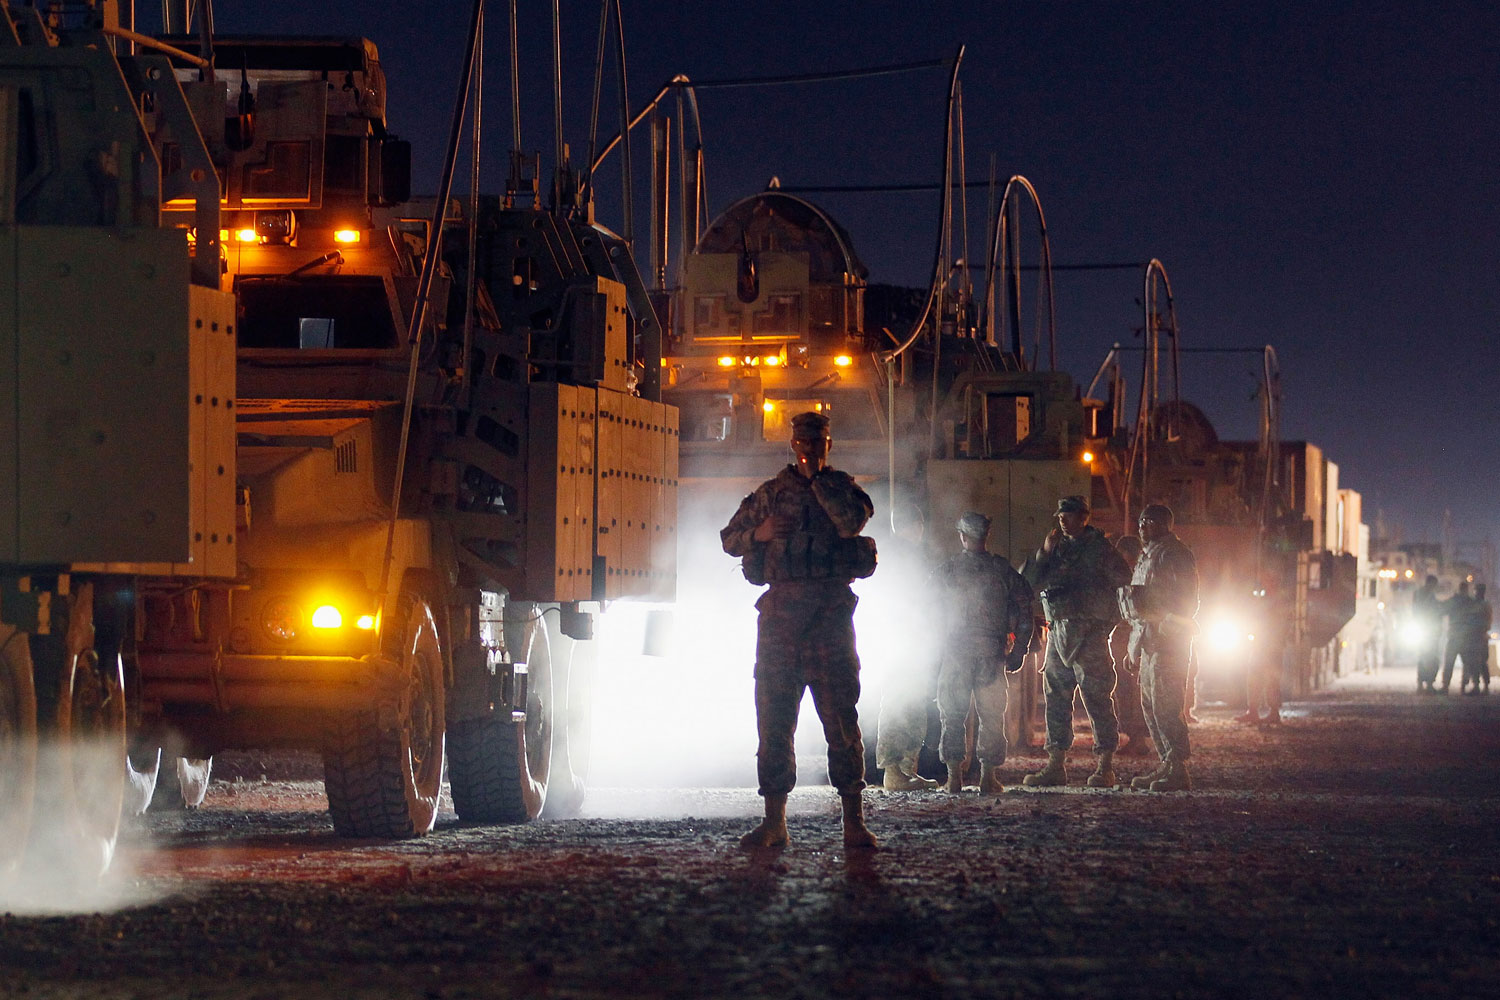 December 7, 2011. U.S. Army soldiers from the 2-82 Field Artillery, 3rd Brigade, 1st Cavalry Division, wait to load onto their armored vehicles as they prepare to convoy to Kuwait from Camp Adder in Iraq  at Camp Adder, near Nasiriyah, Iraq. After seven months in Iraq, the third Brigade is pulling out of the country as part of America's military exodus by the end of December after eight years of war and occupation which included the overthrow of Saddam Hussein.